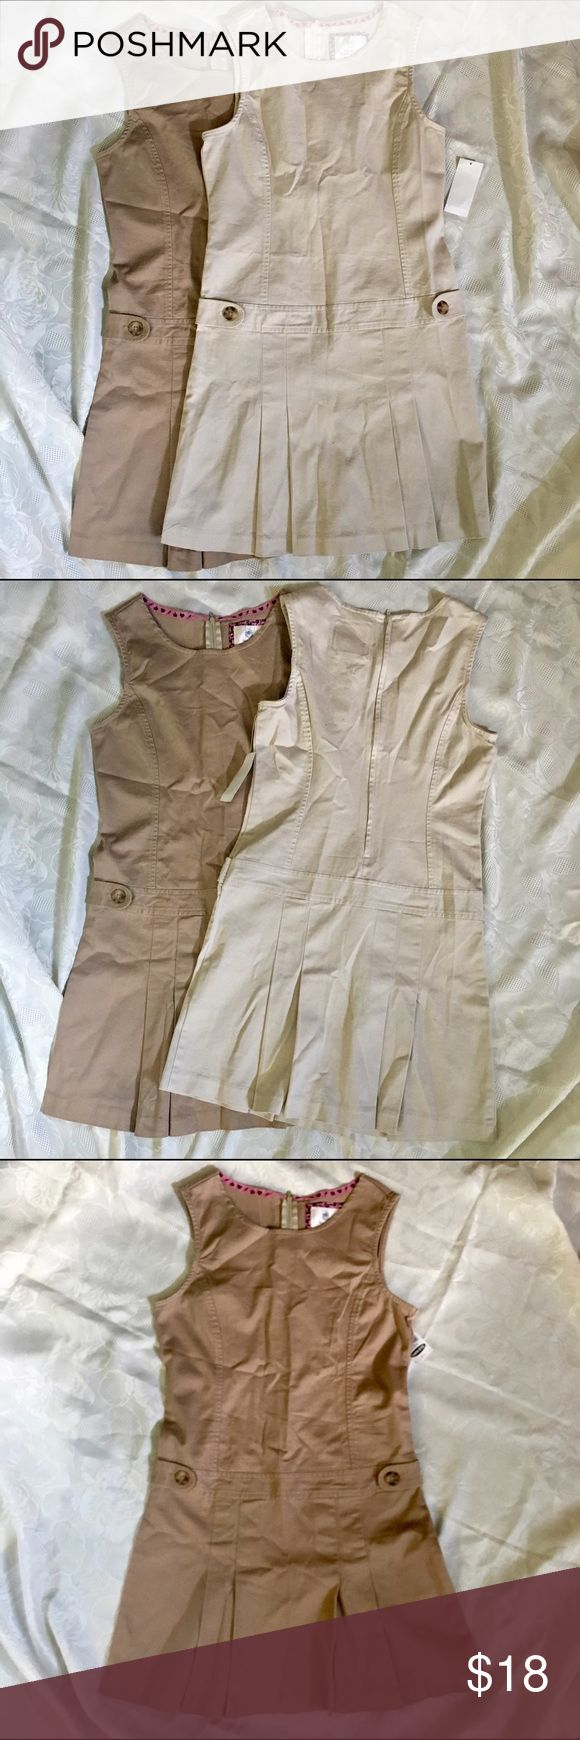 Old Navy Girls Khaki Dress. Cute Brown and Cream Khaki dress for girls. Size 12. NWT. 98% cotton, 2% spandex. Old Navy Dresses Casual